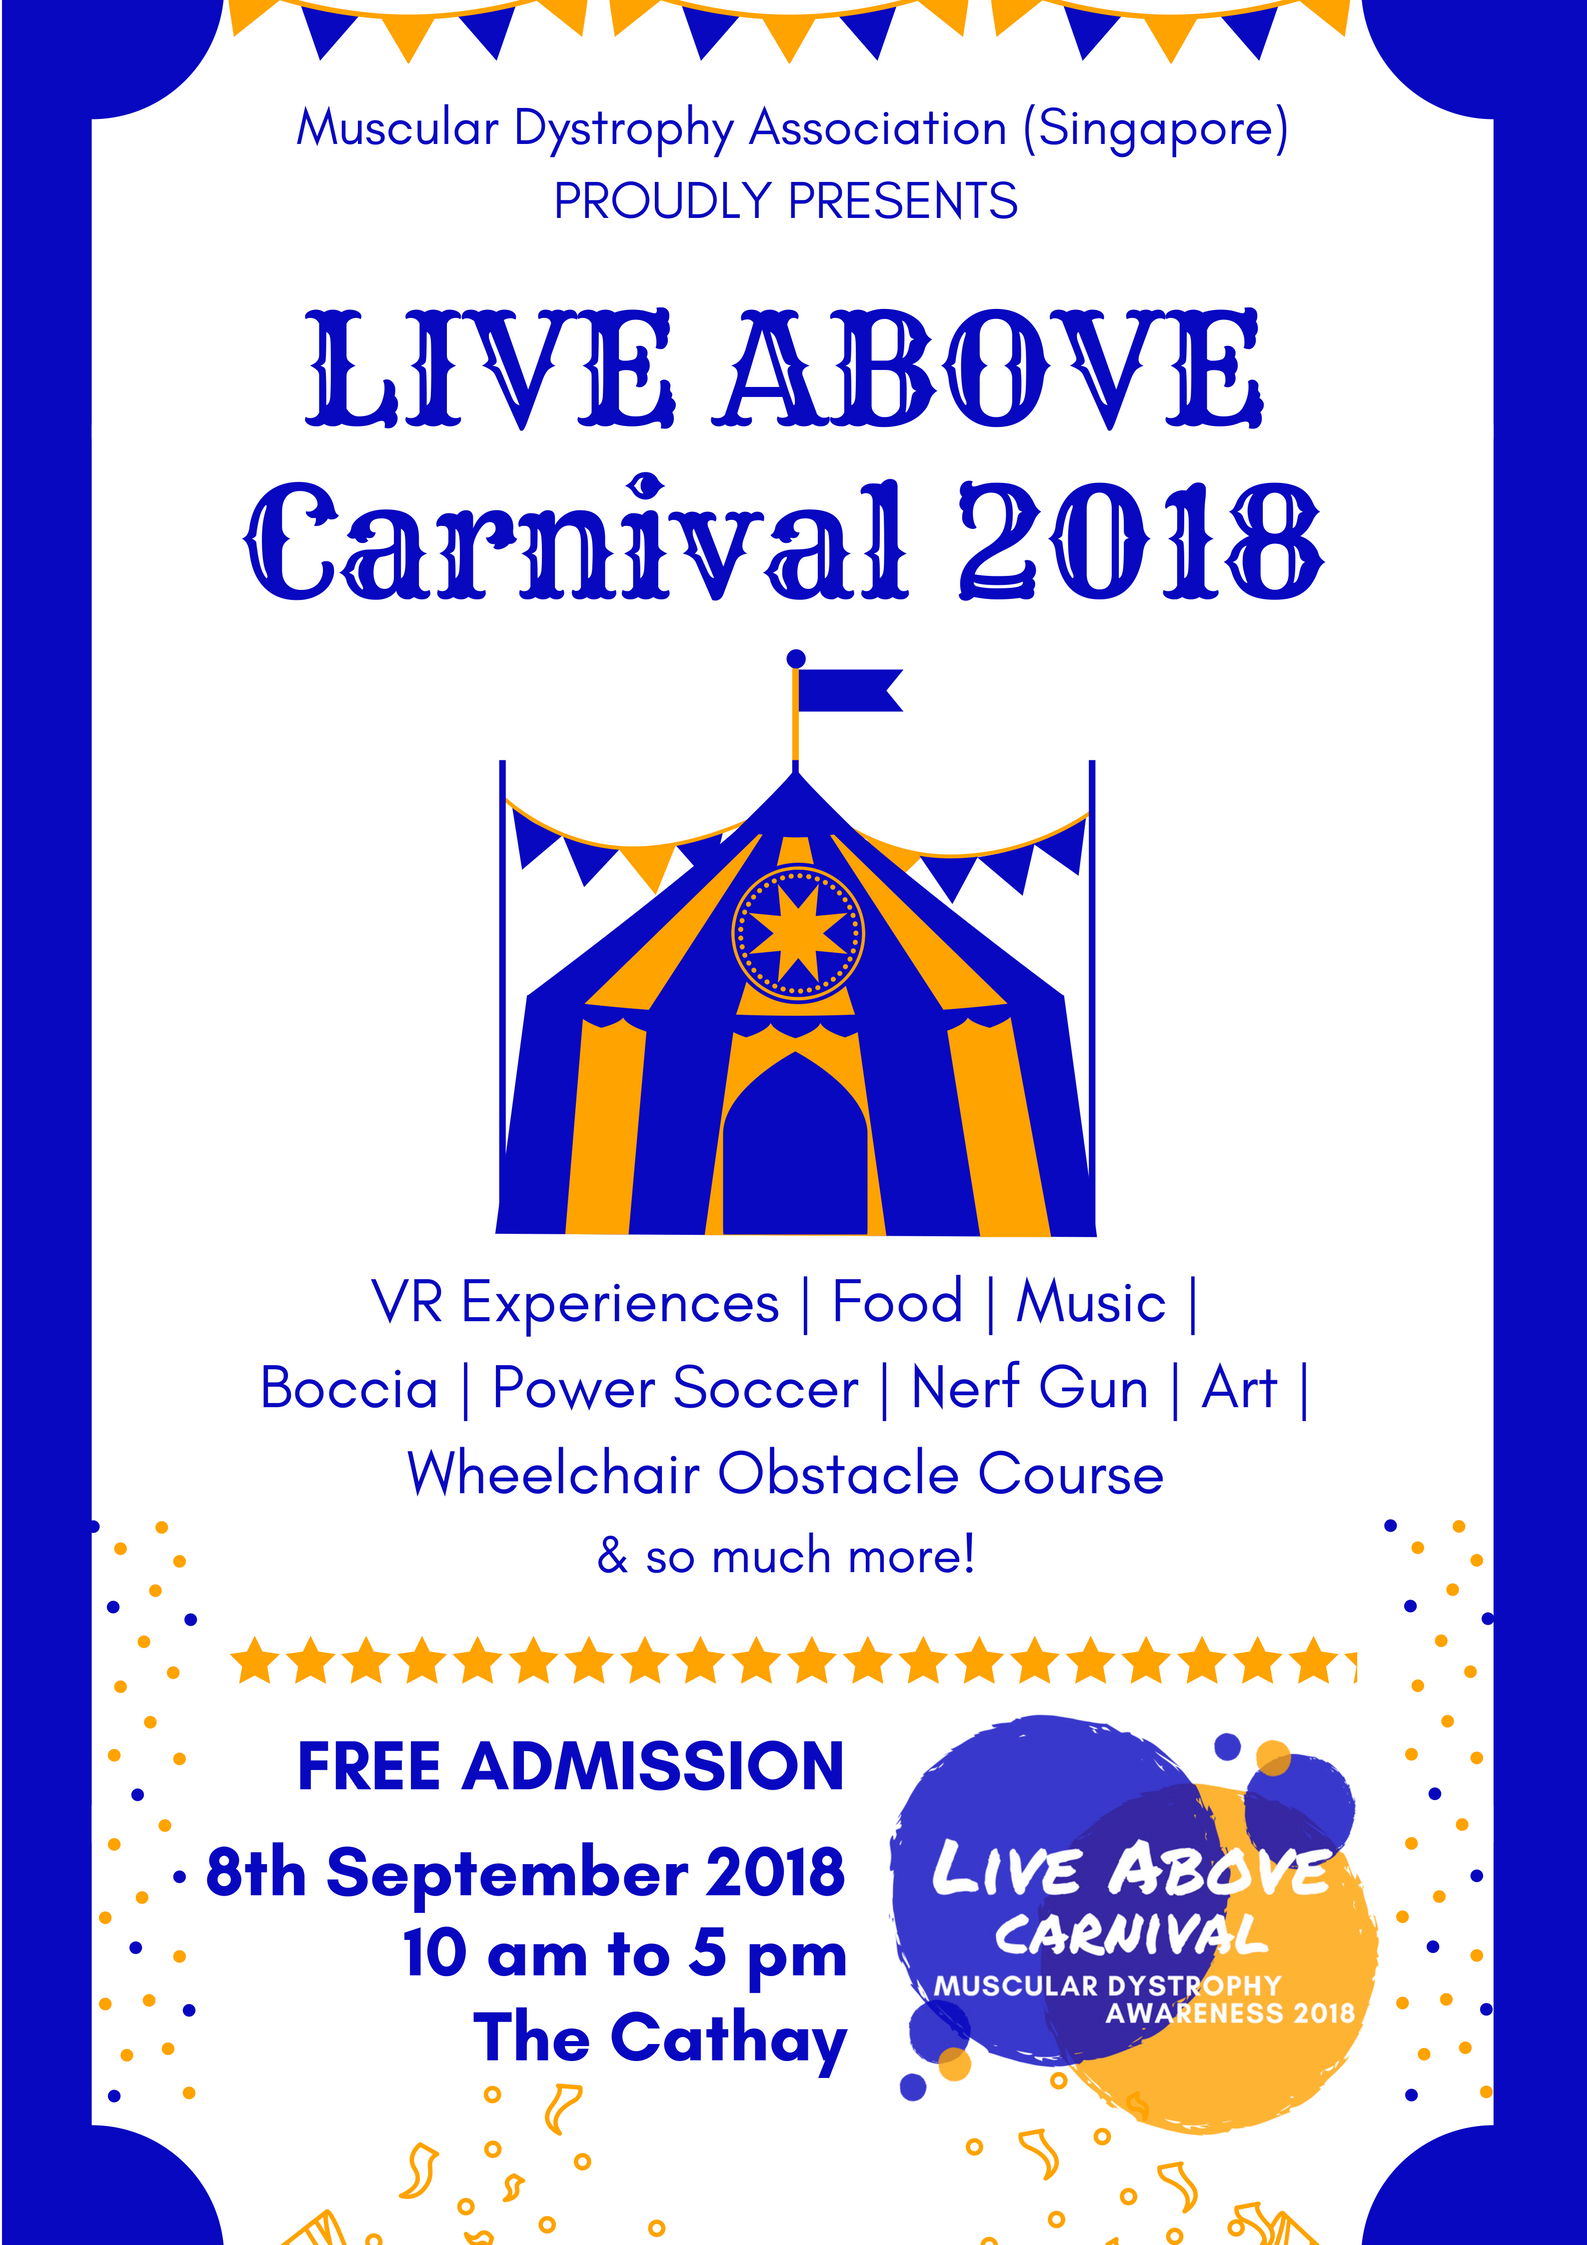 mdas-live-above-carnival-singapore-free-event